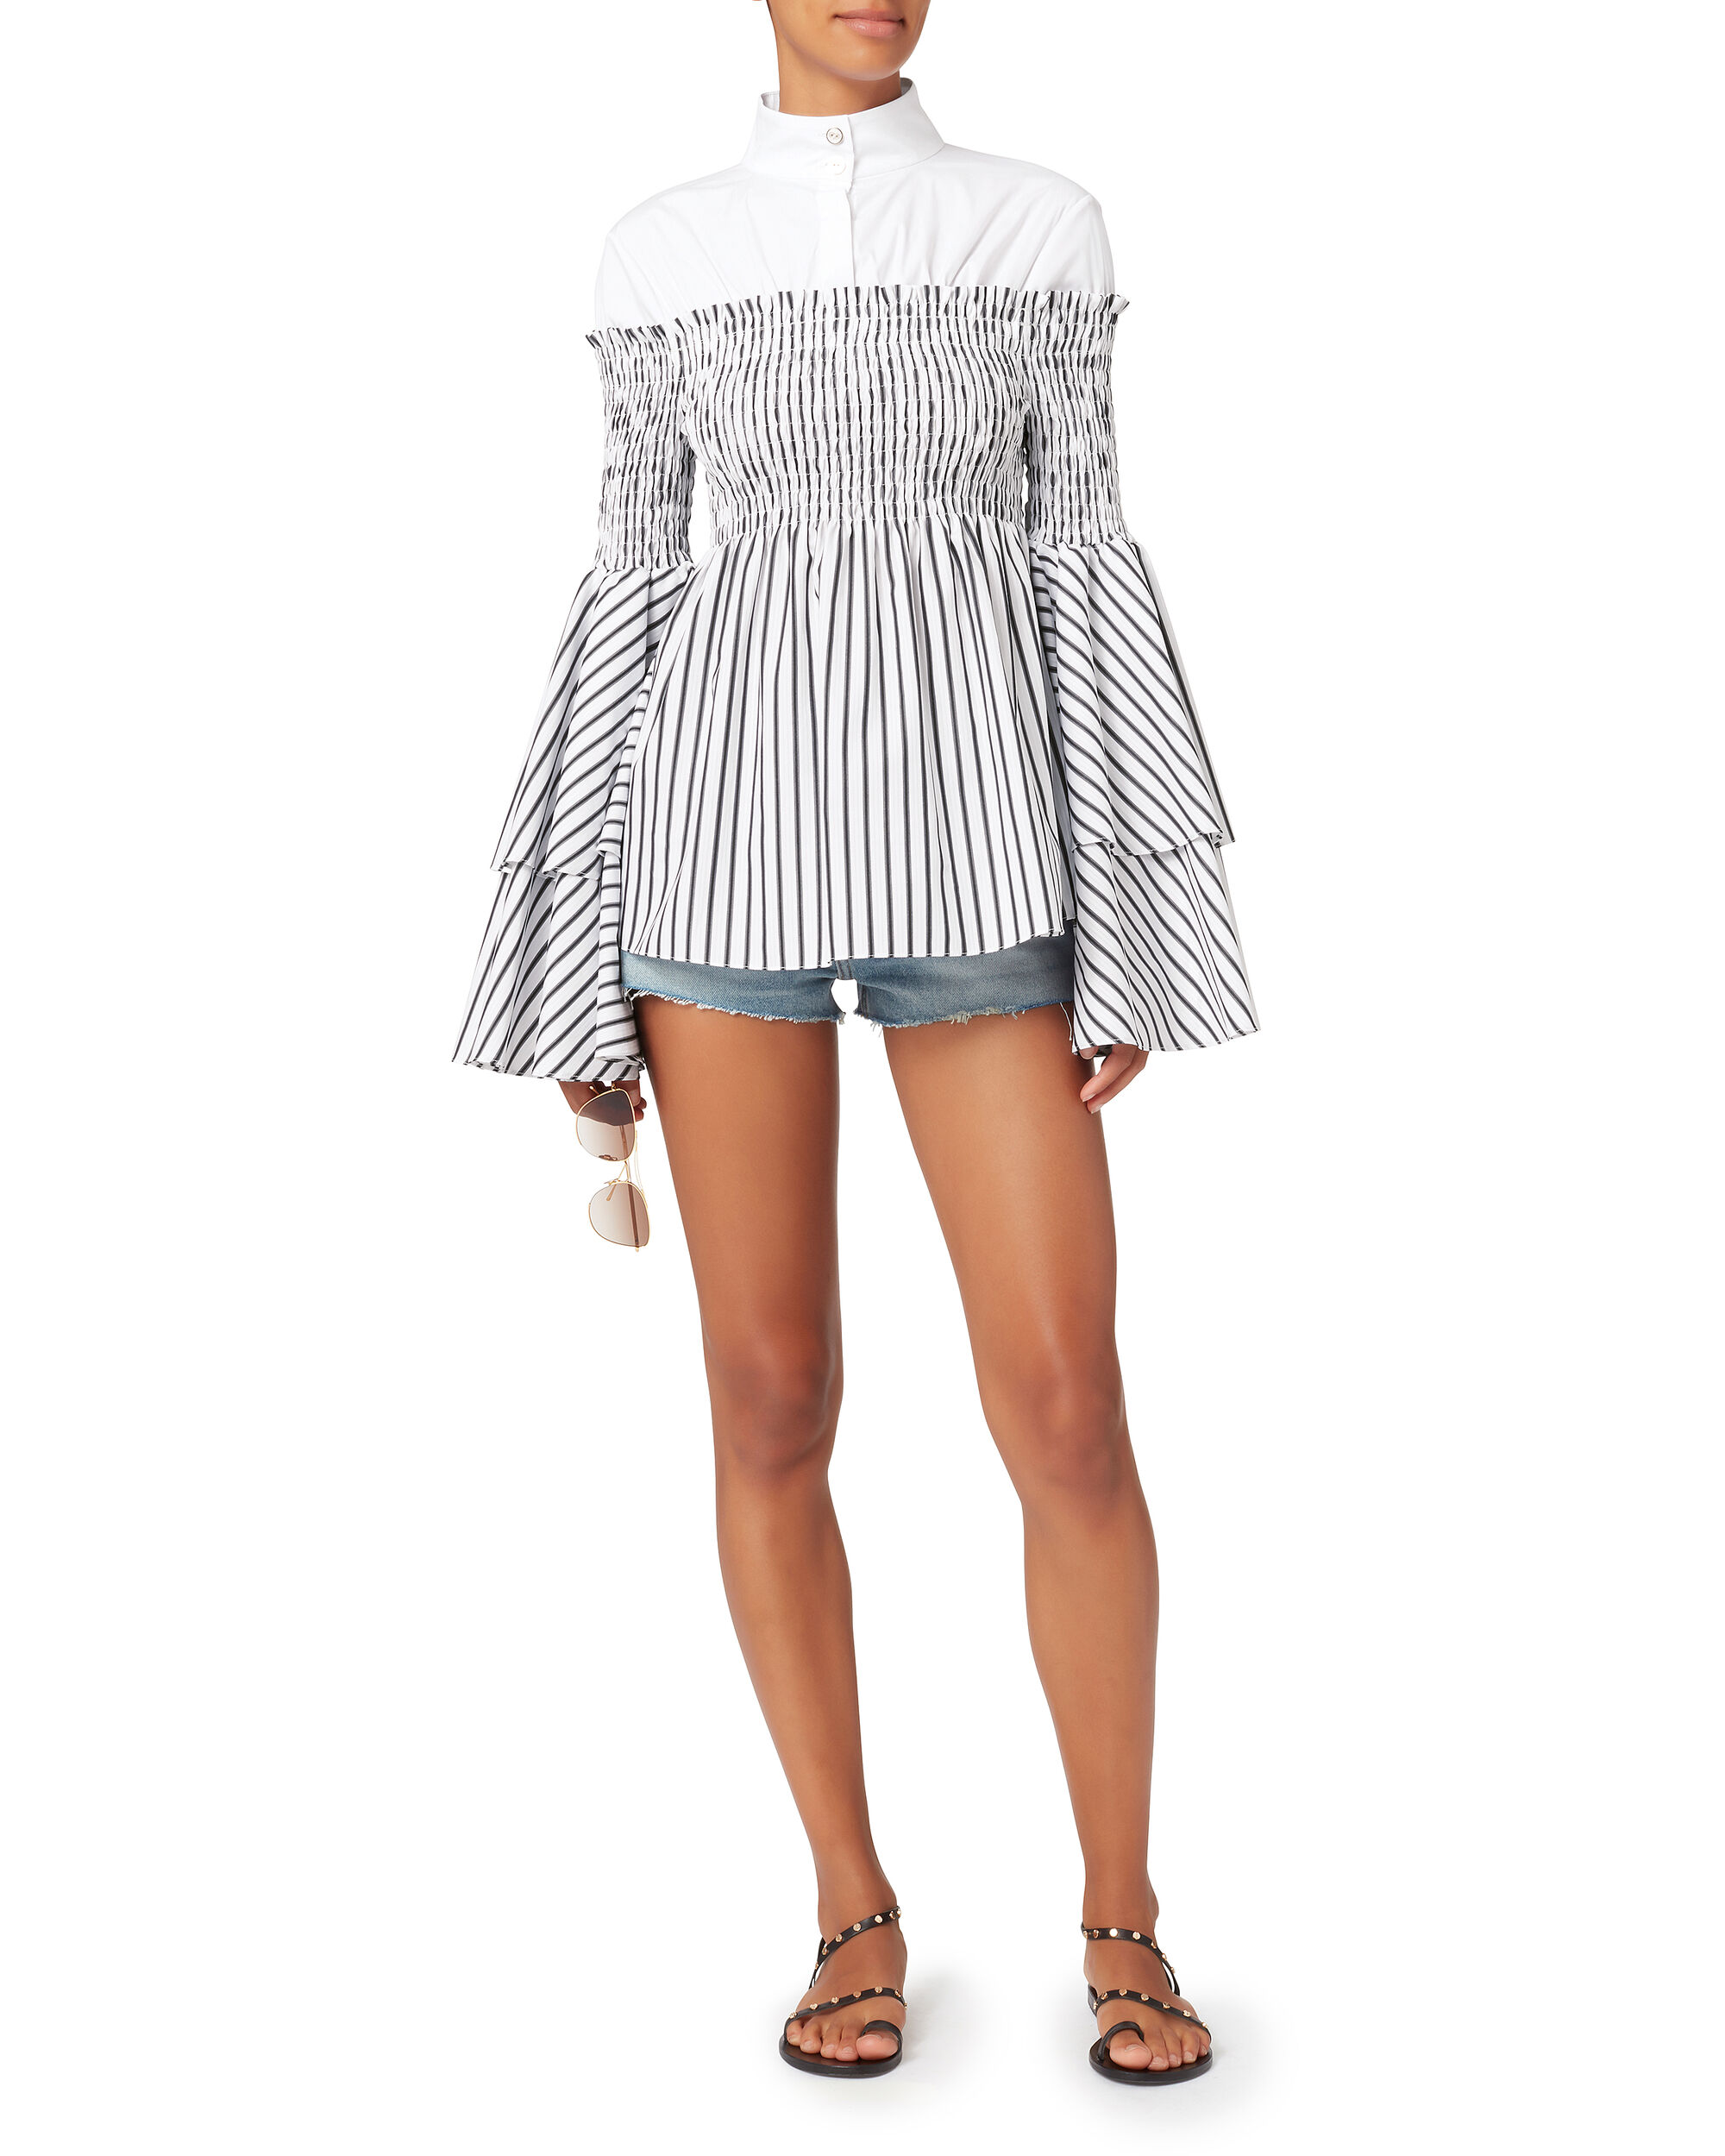 Ali Layered Blouse, STRIPE, hi-res